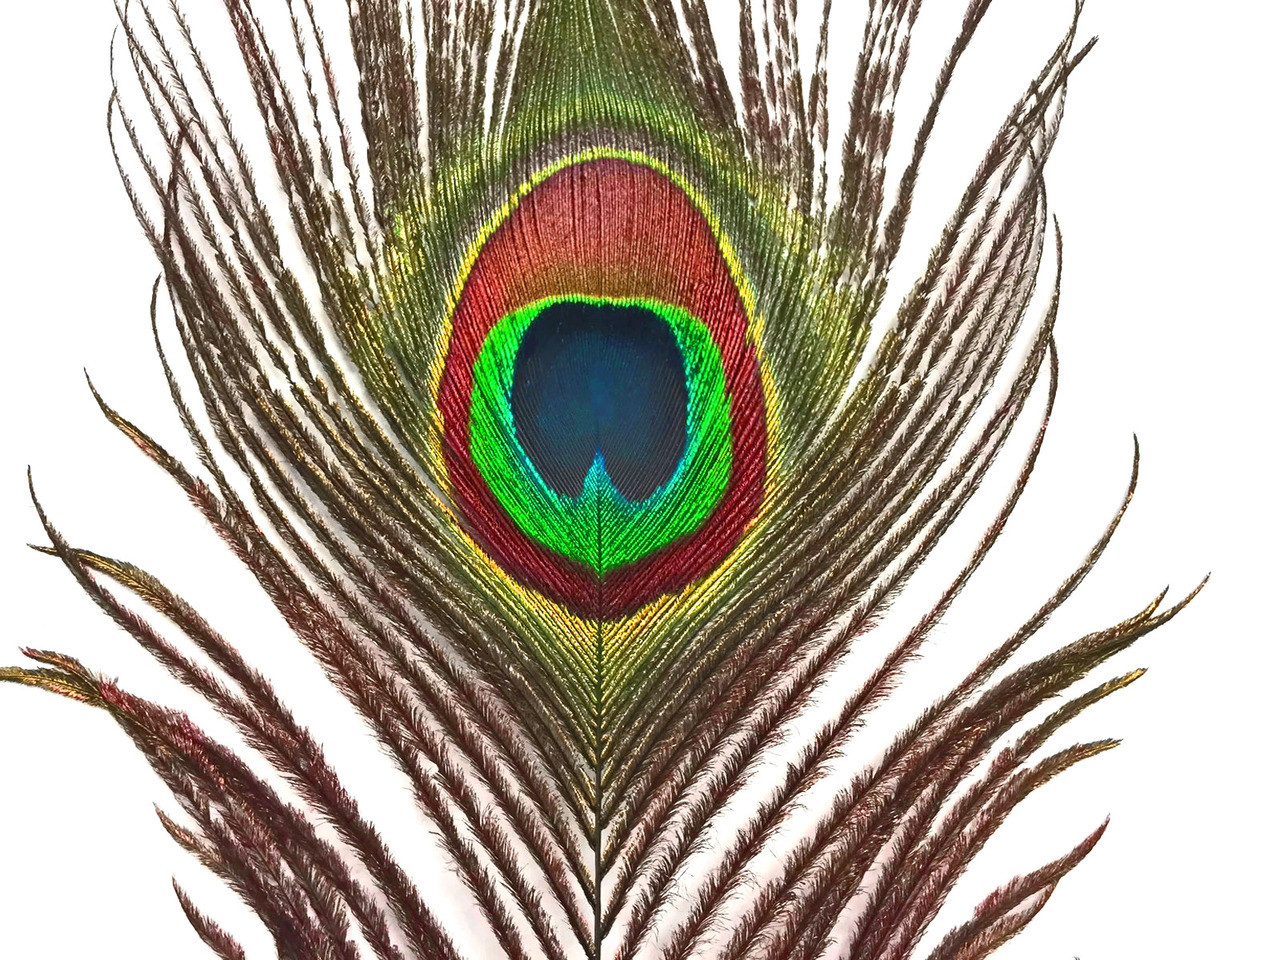 White craft feathers bulk - 100 Pieces 10 12 Natural Peacock Tail Eye Wholesale Feathers Bulk